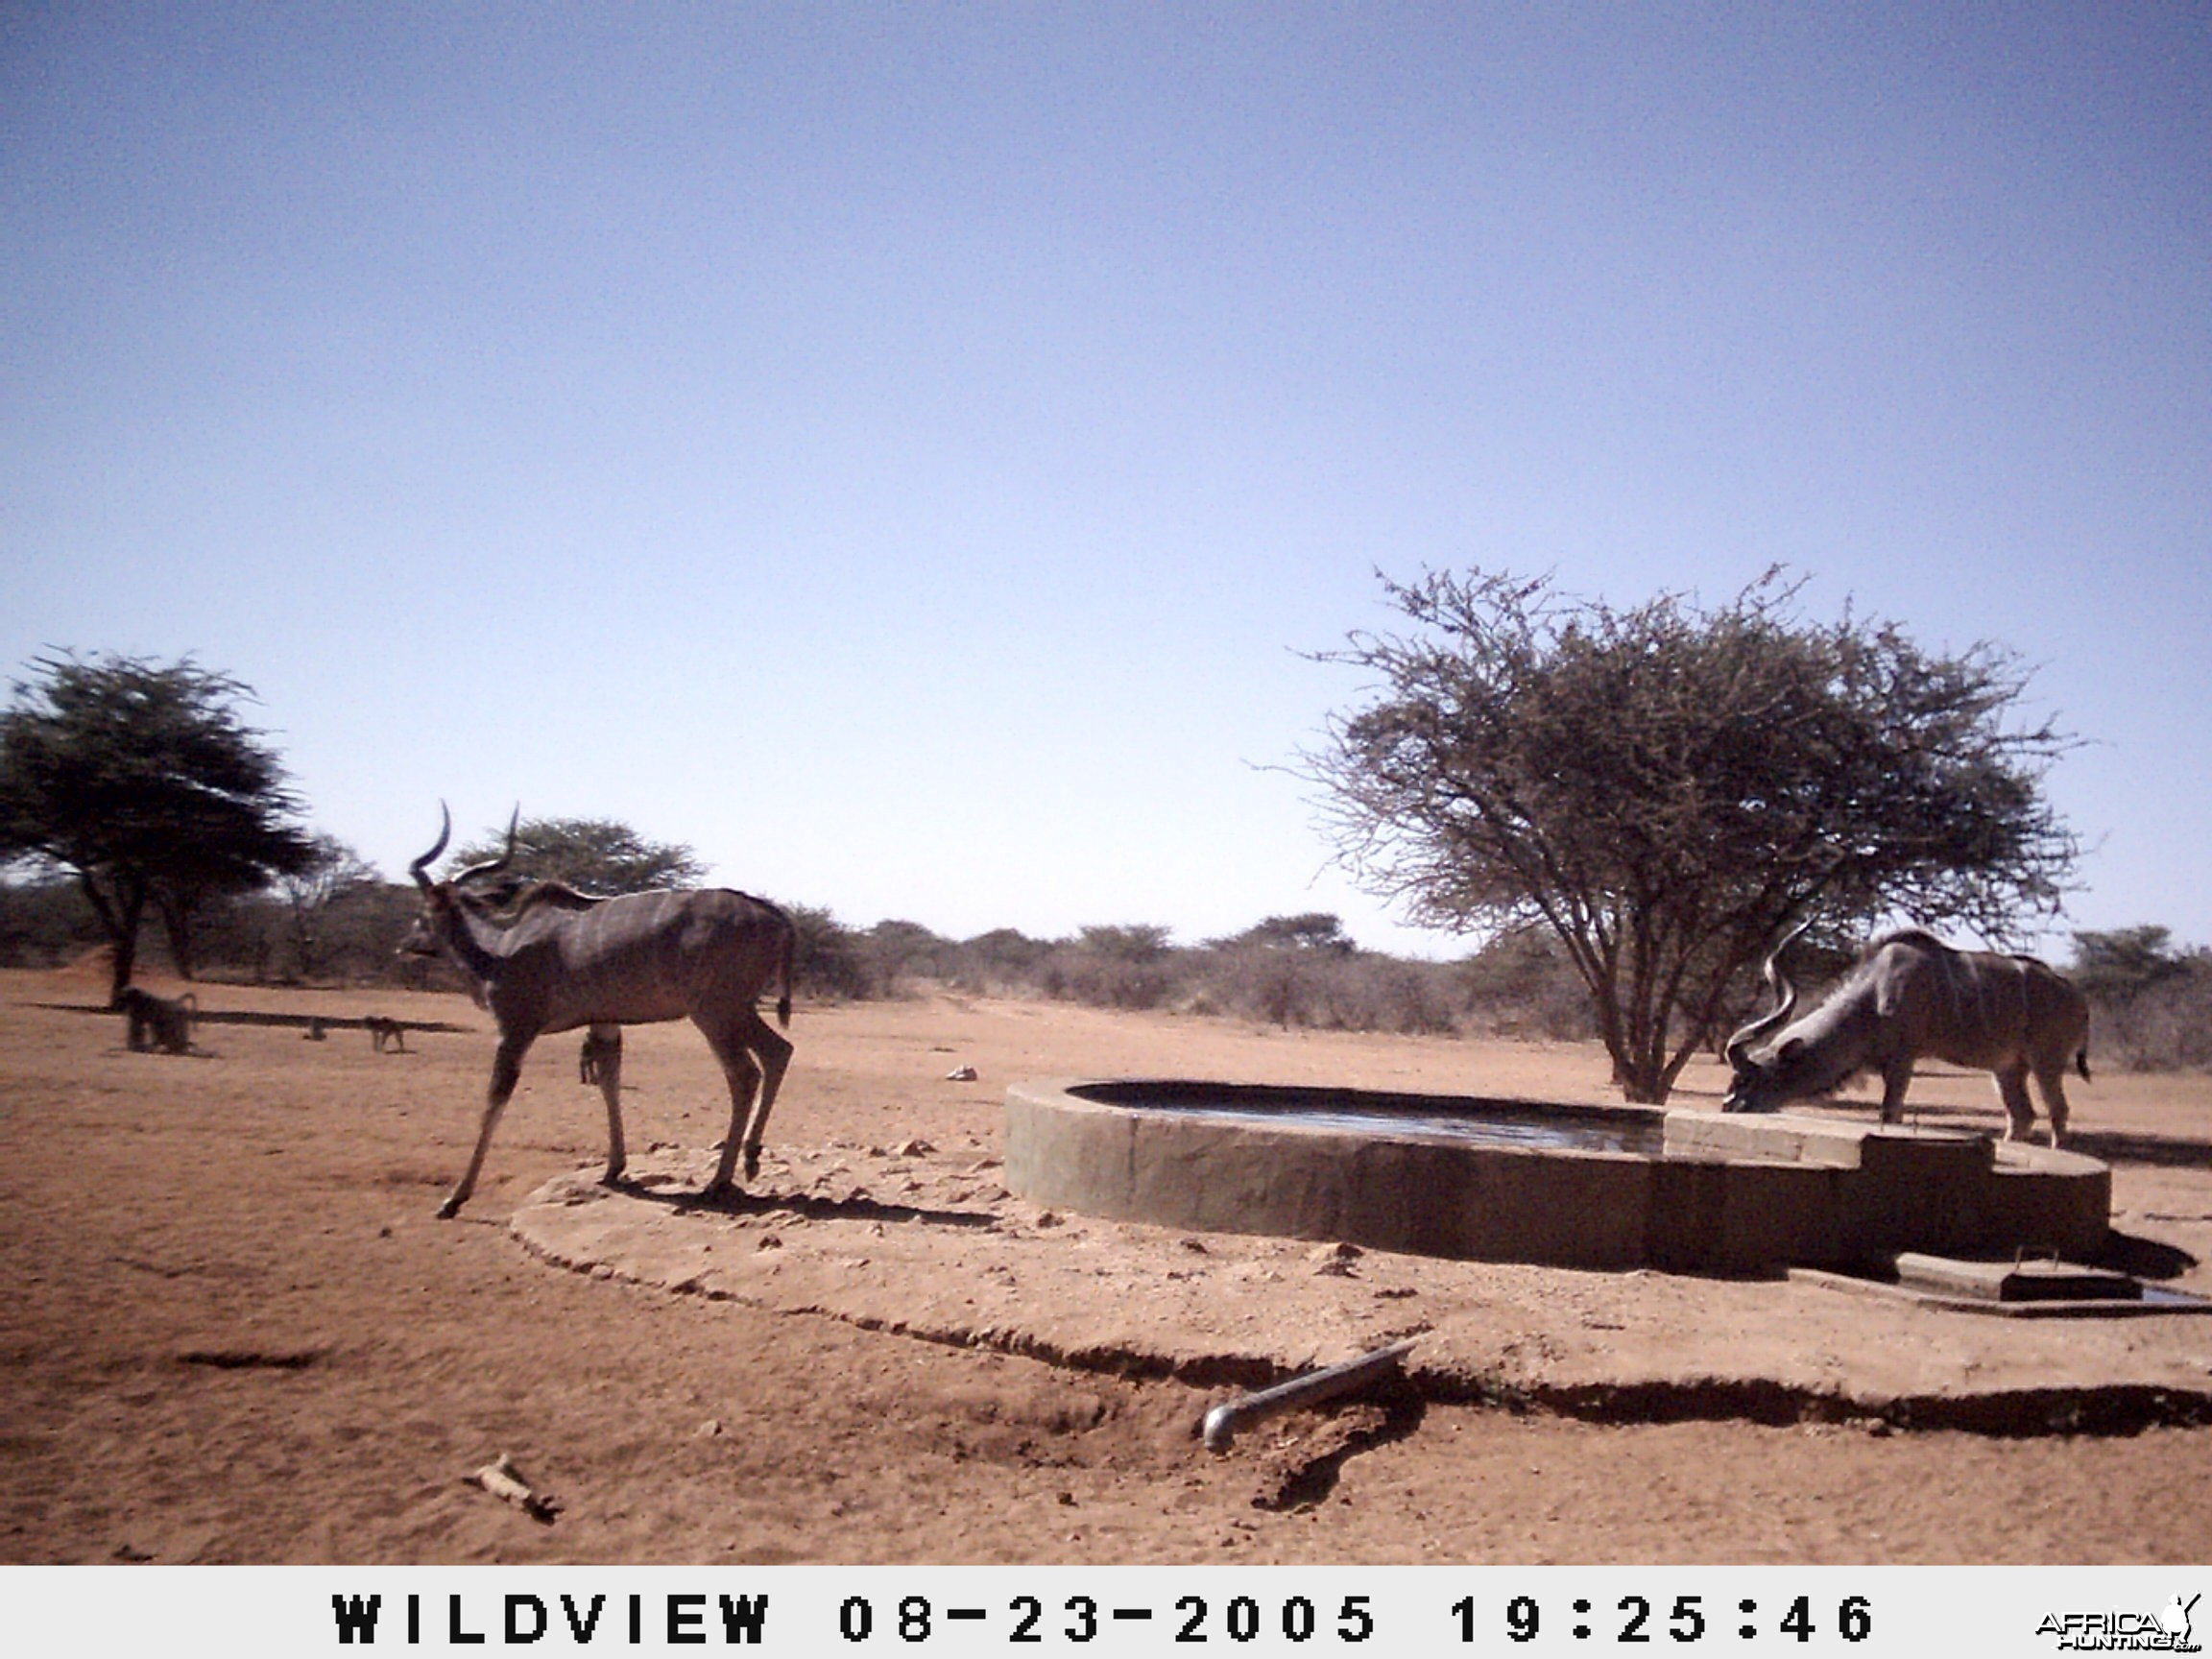 Kudus and Baboons, Namibia